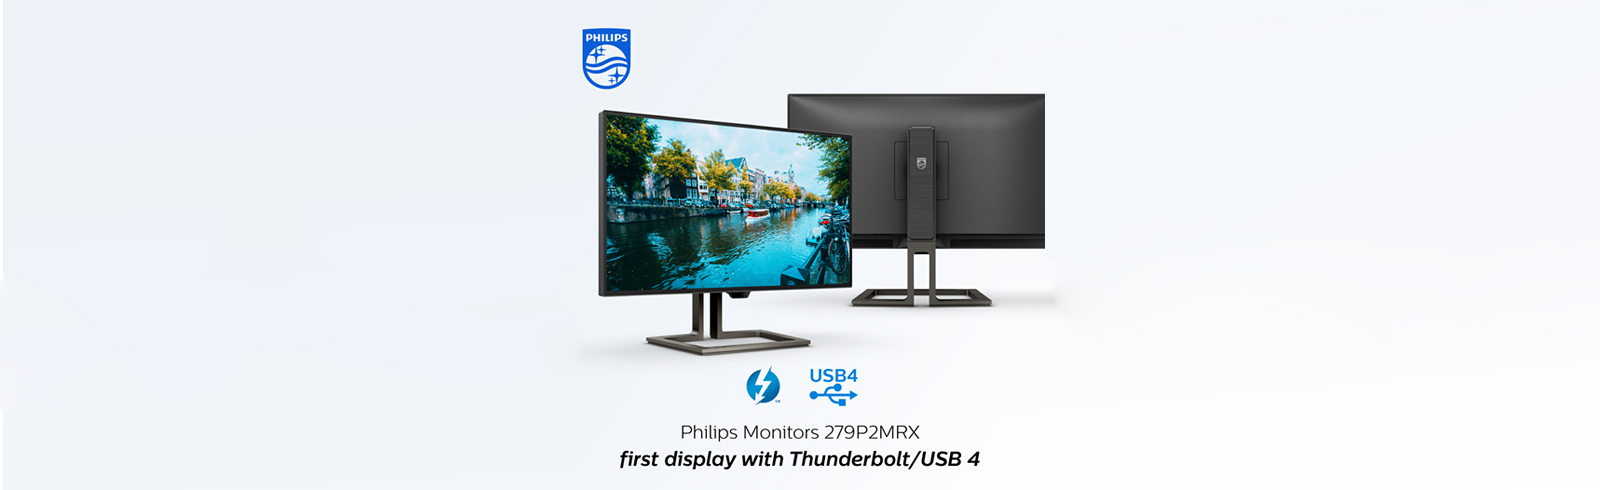 "Philips 279P2MRX - an upcoming 27"" 4K Mini-LED desktop monitor with two Thunderbolt 4 ports"